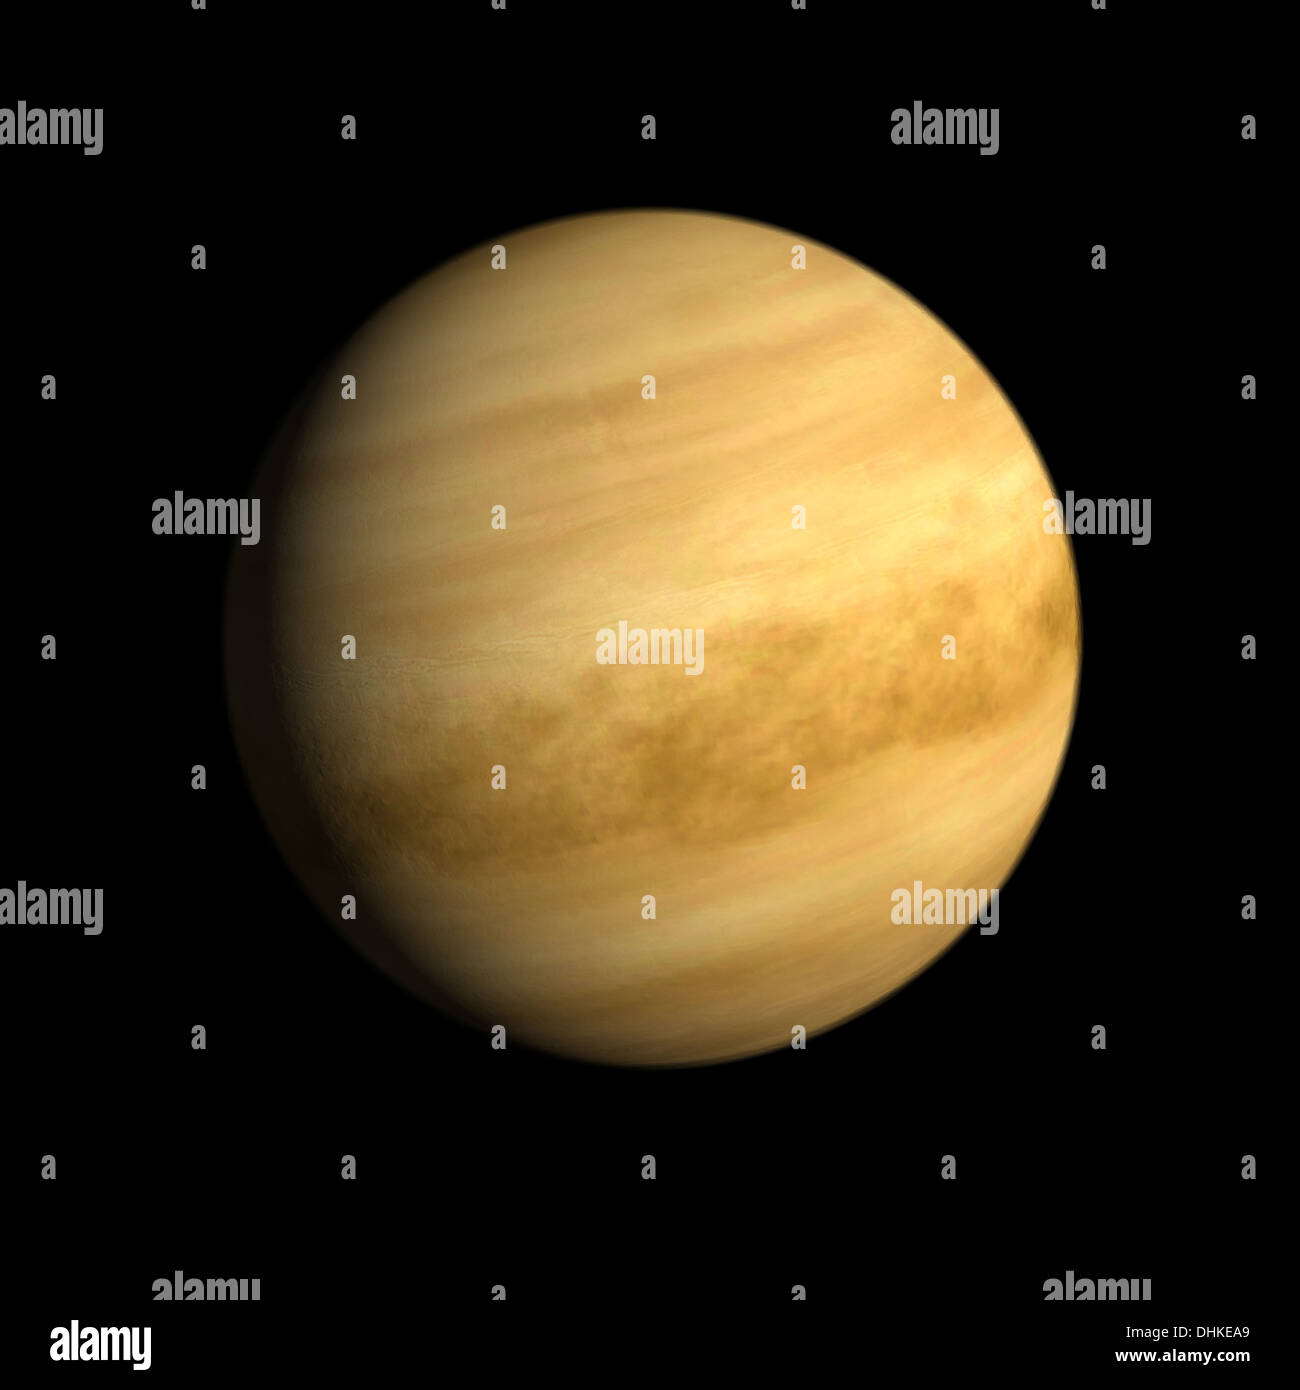 A rendering of the Planet Venus on a clean black background. - Stock Image